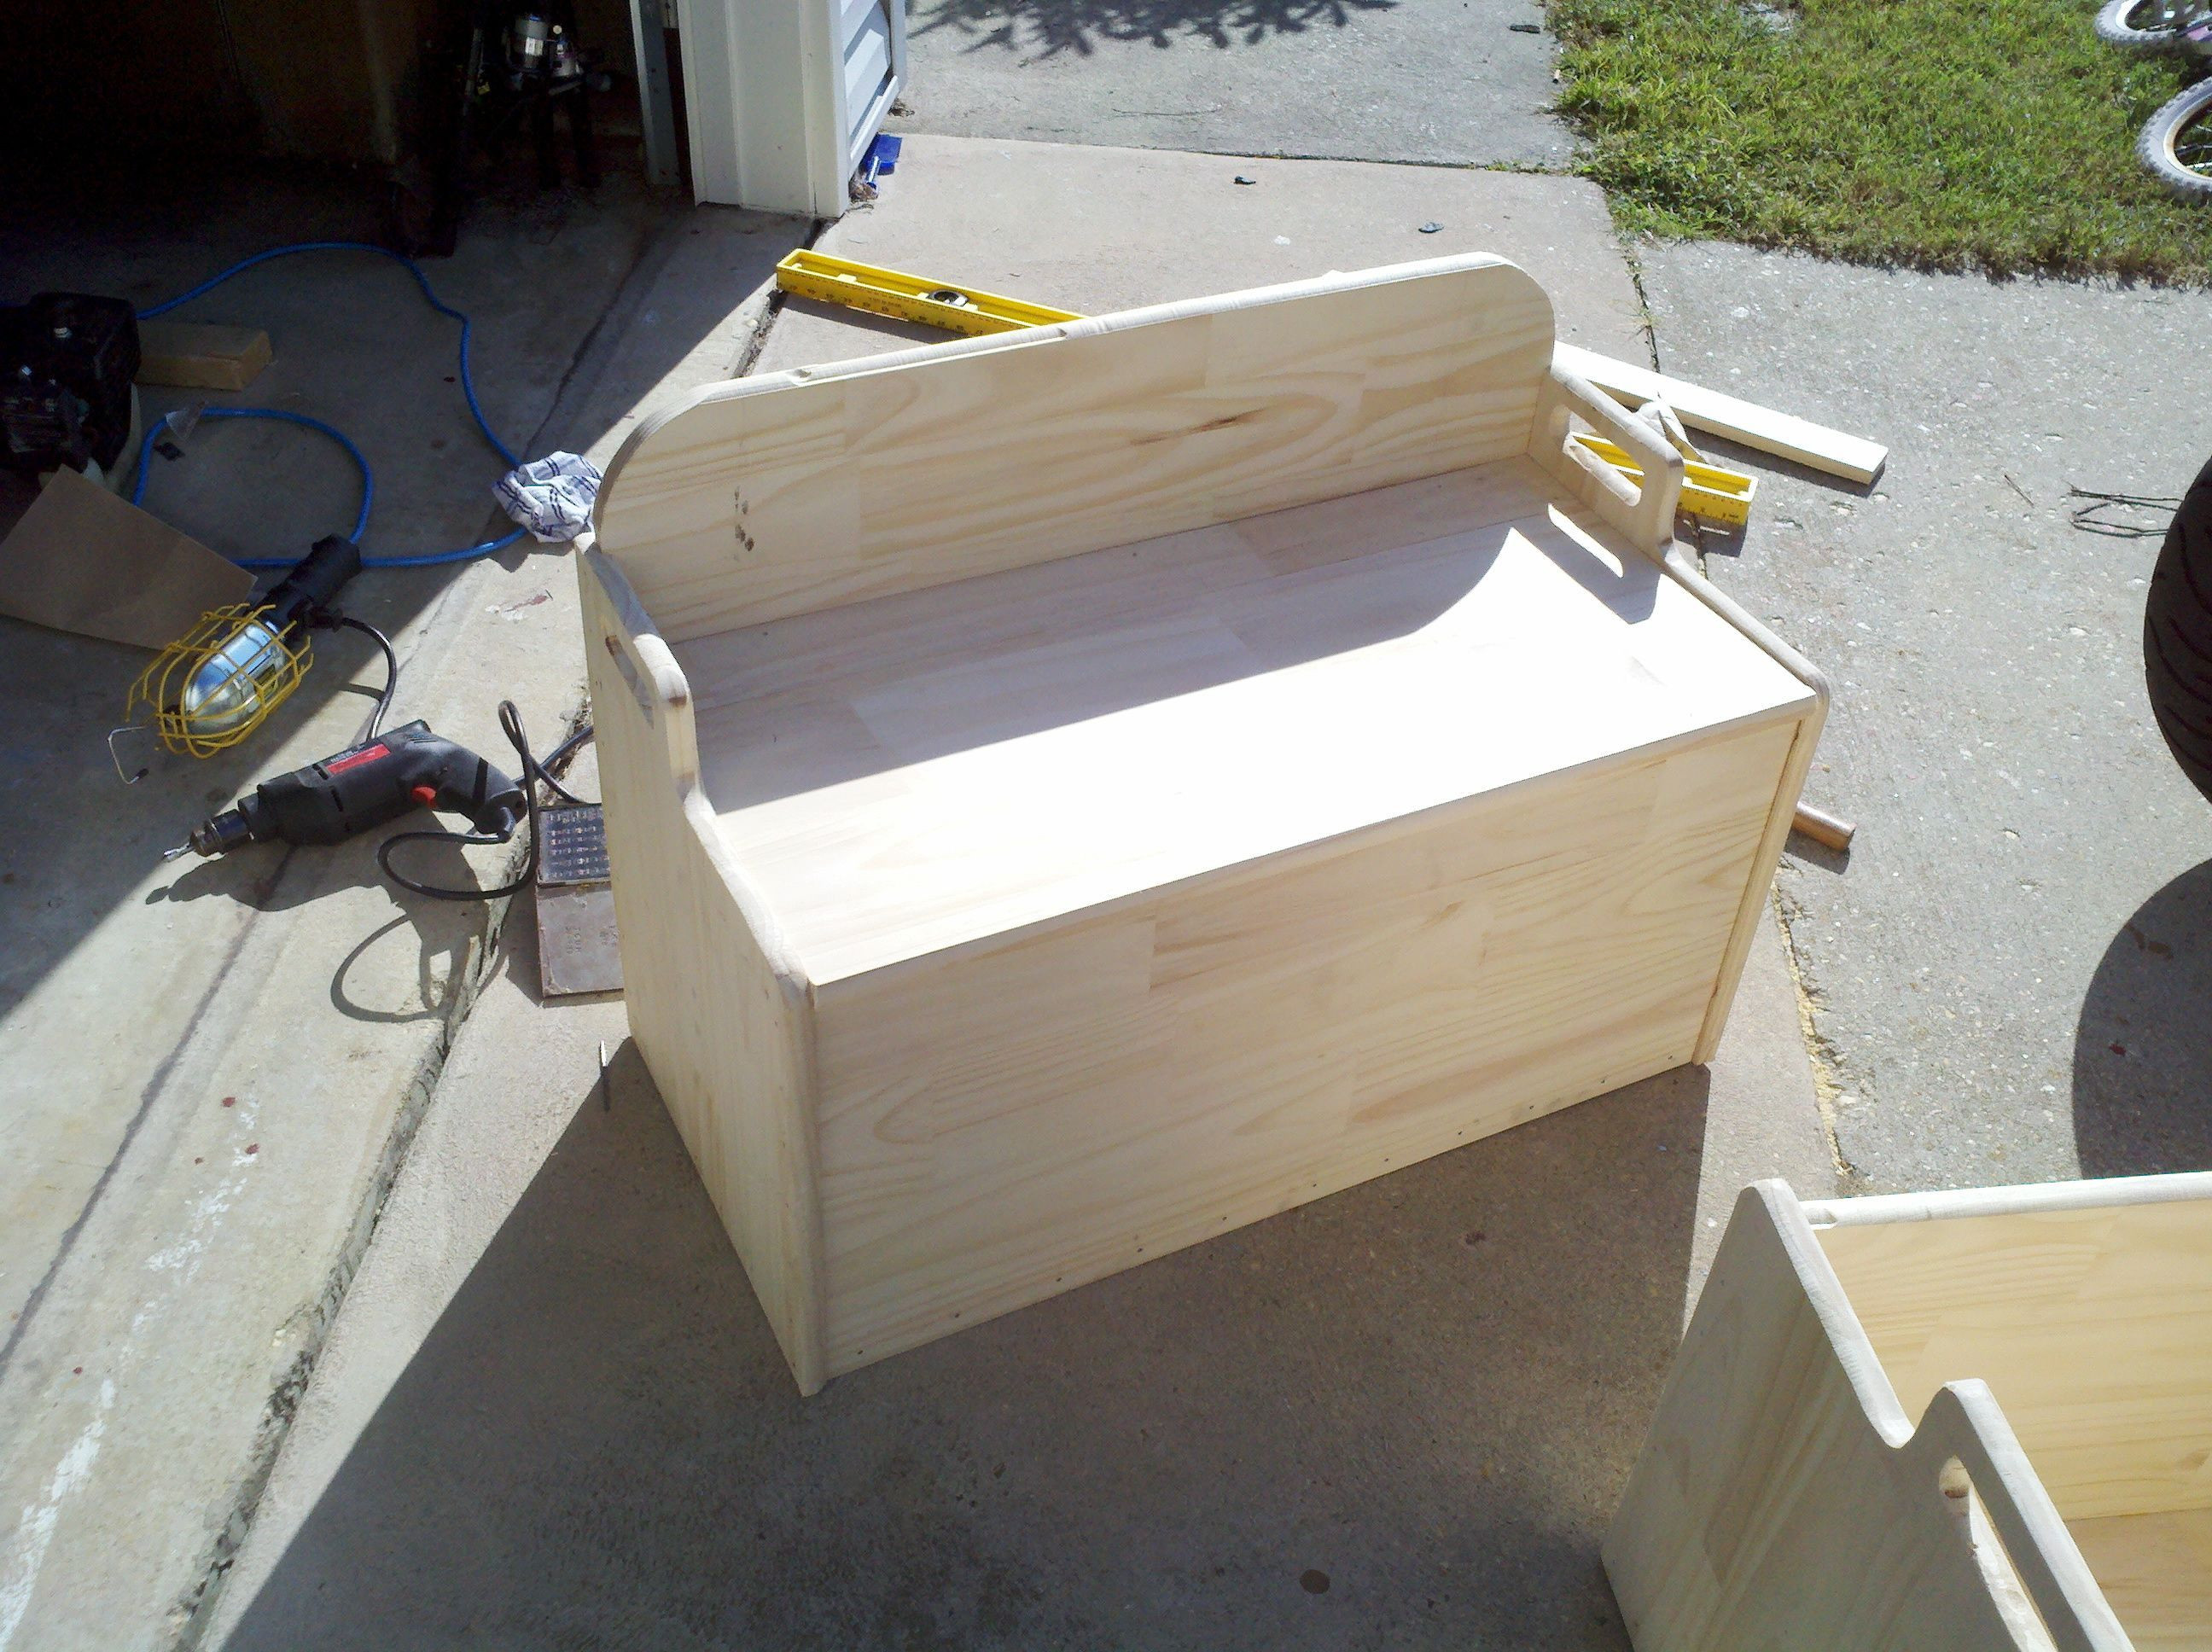 Best ideas about DIY Toy Chest Plans . Save or Pin Woodworking plans Plans To Build A Toy Box free Now.